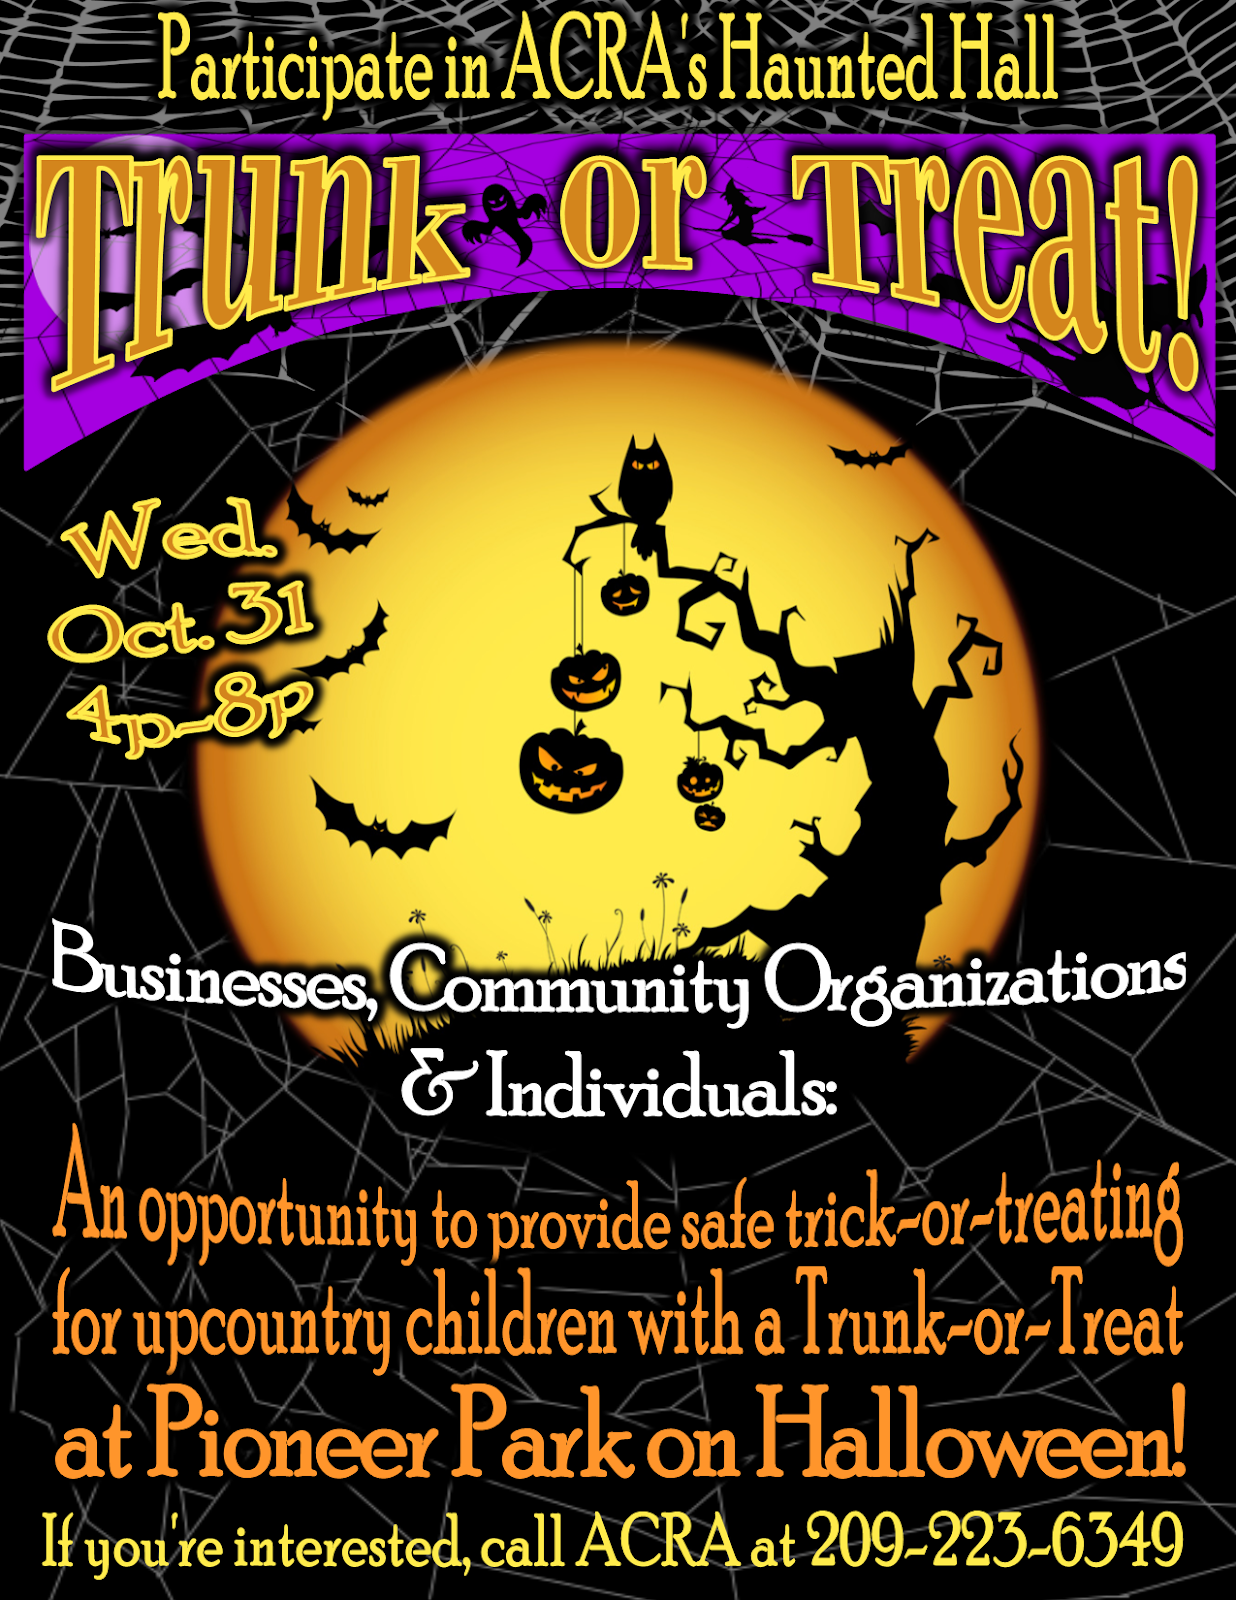 Trunk-or-Treat at Pioneer Park - Wed Oct 31